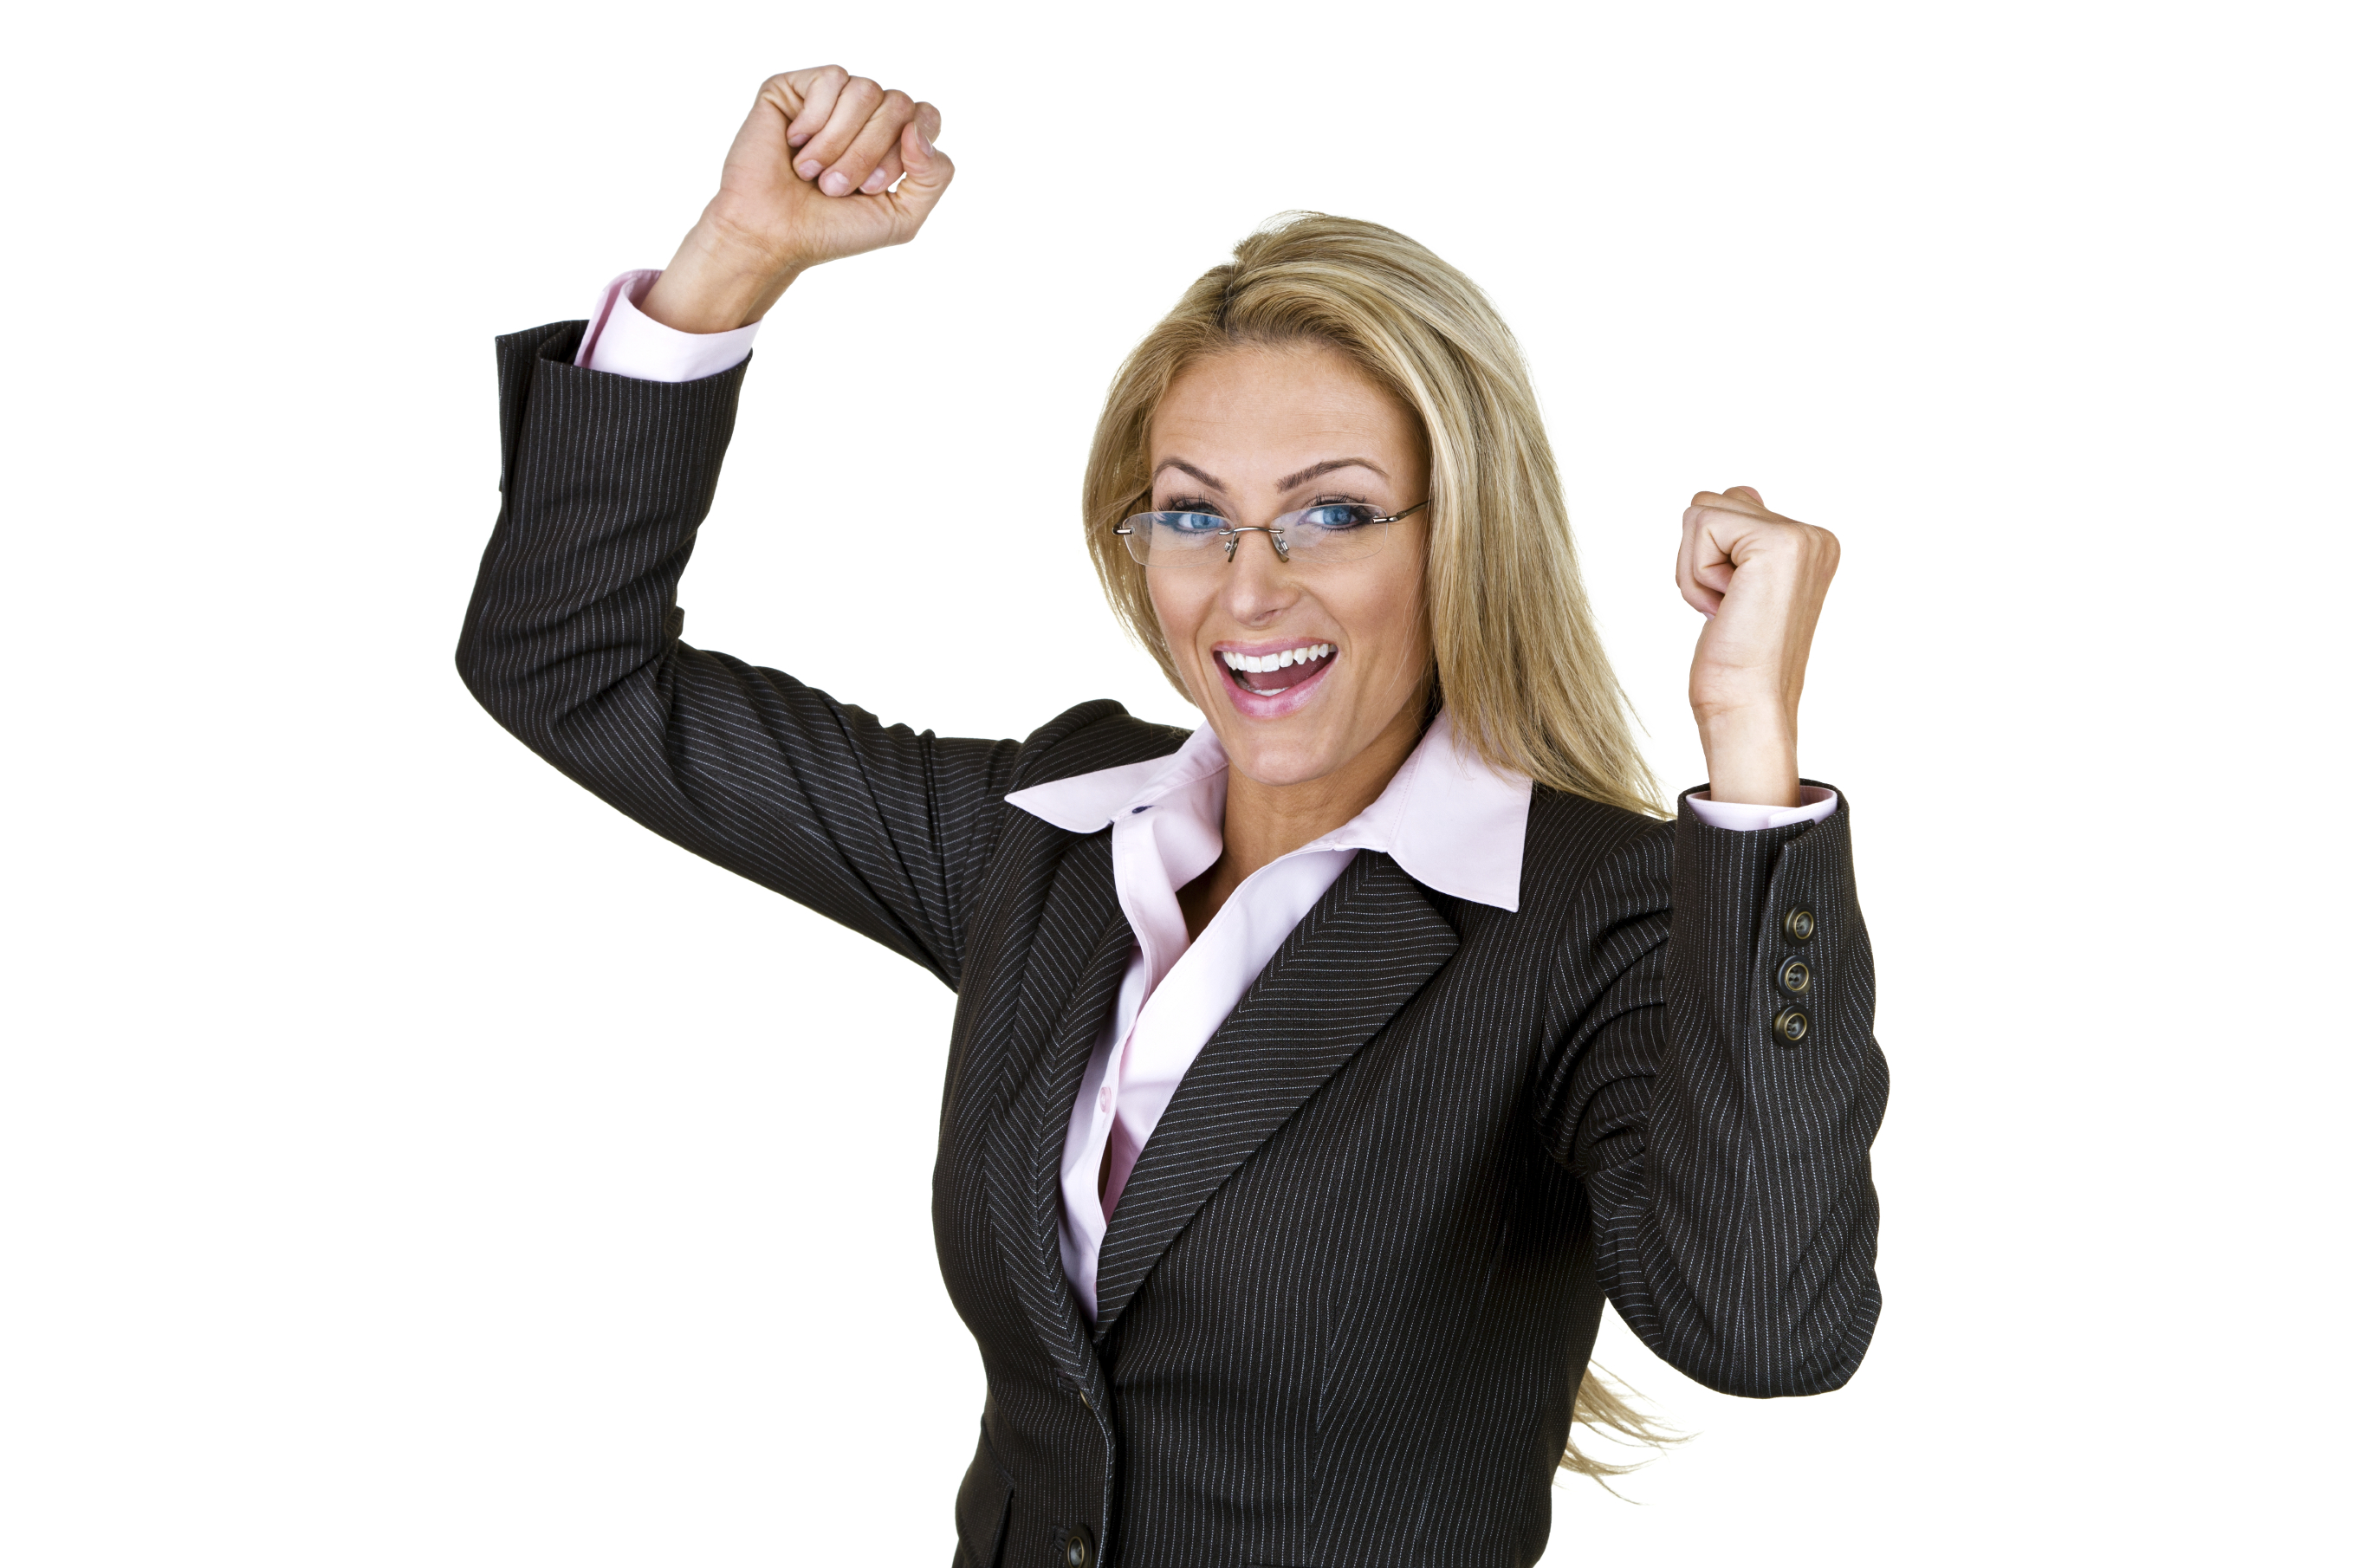 excited-female-lawyer.jpg